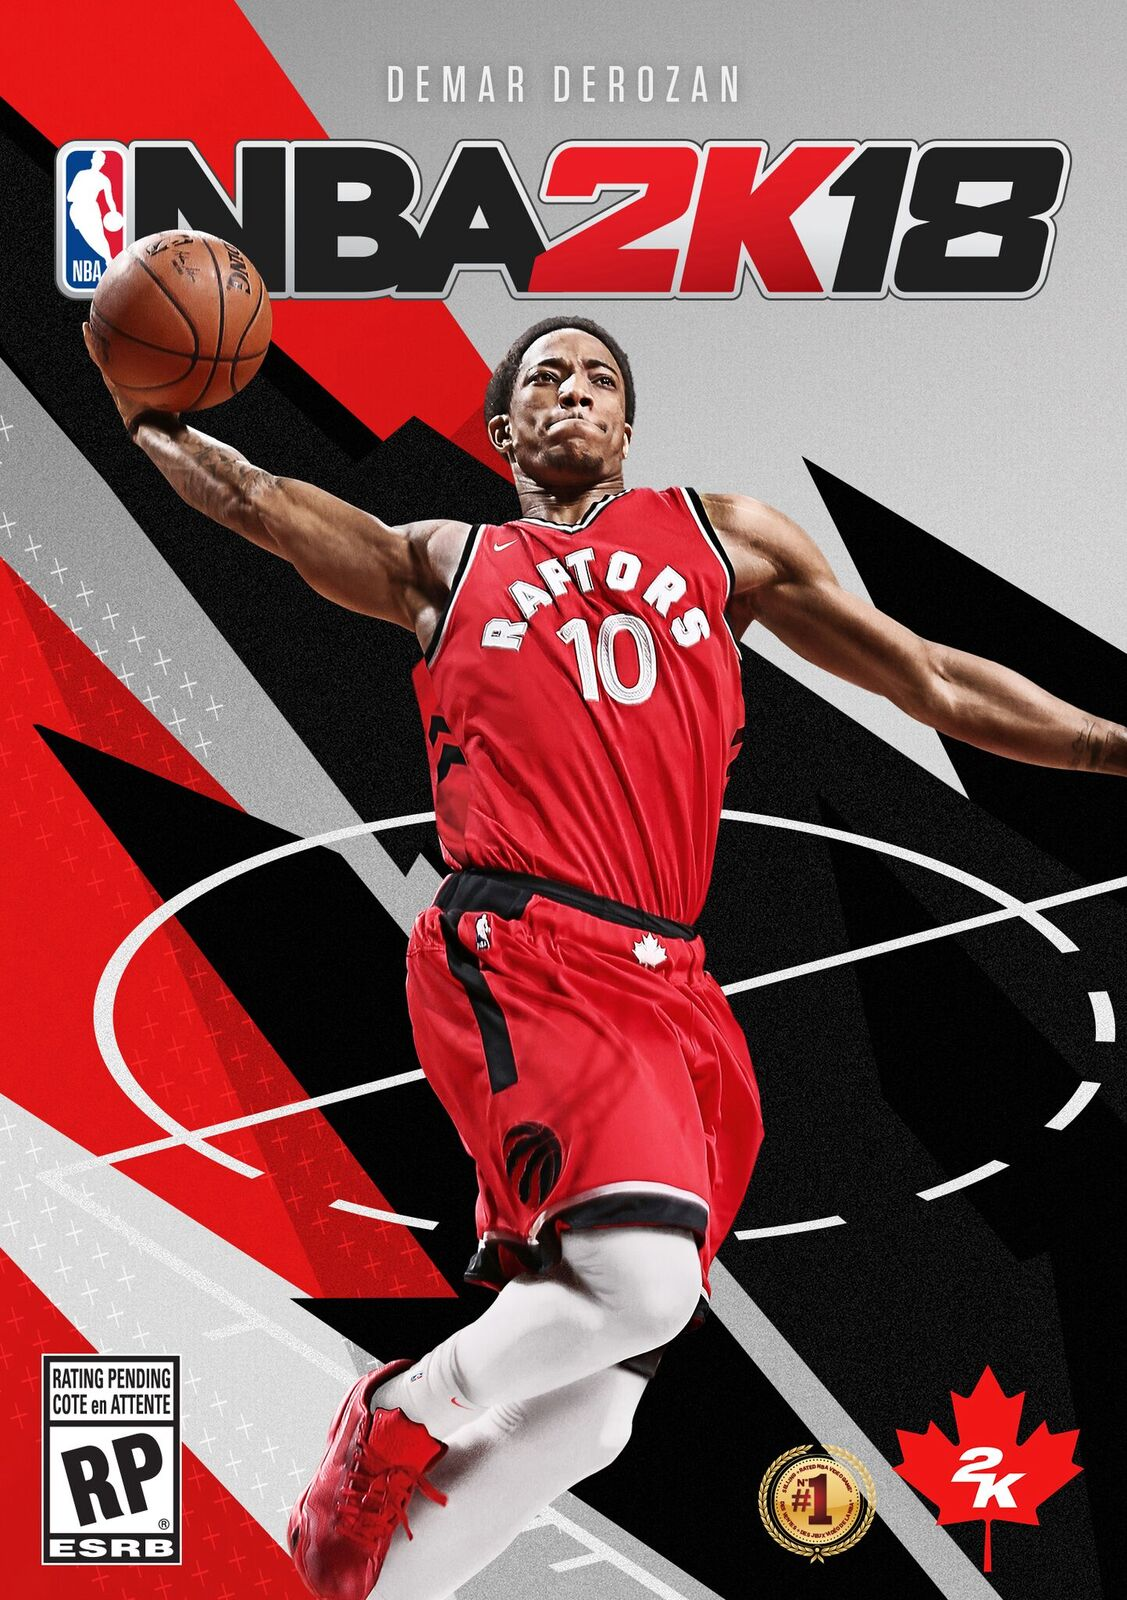 nba 2k series a basketball based video game The nba 2k series is a series of basketball simulation video games developed and released annually since 1999 the premise of each game in the series is to emulate the sport of basketball, more specifically, the national basketball association, and present improvements over the previous installments.